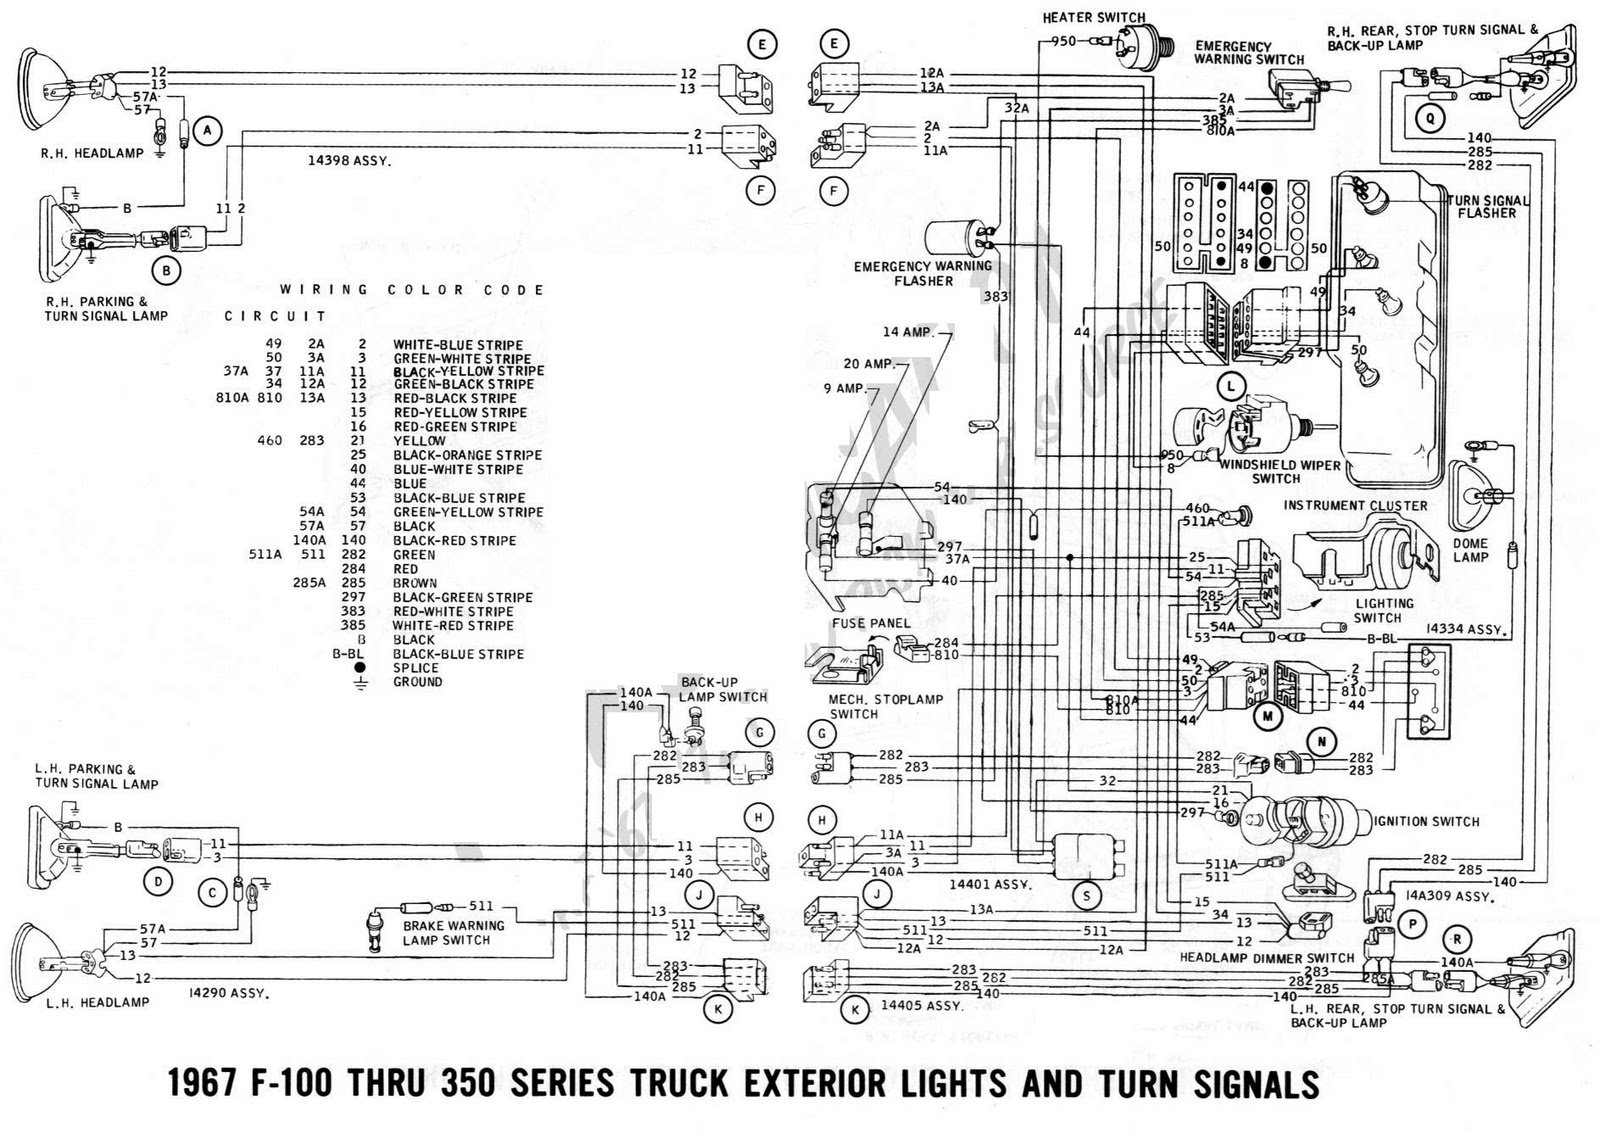 turn signal wiring diagram chevy truck 3 position rotary switch 1969 get free